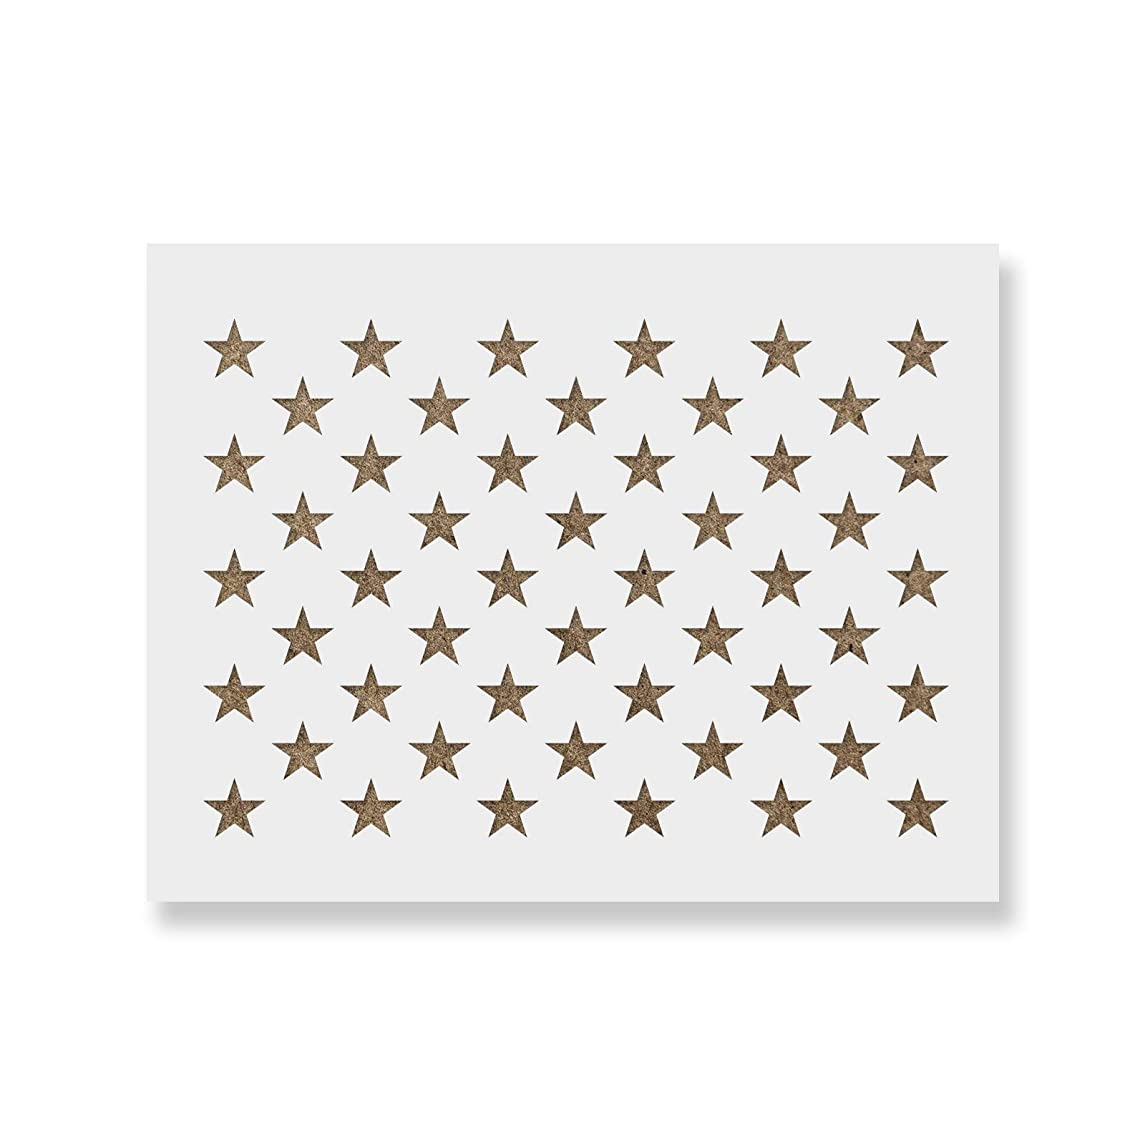 50 Stars Stencil Template - Reusable Stencil of American Flag 50 Stars in Official US Proportions (Actual Dimensions 21.8